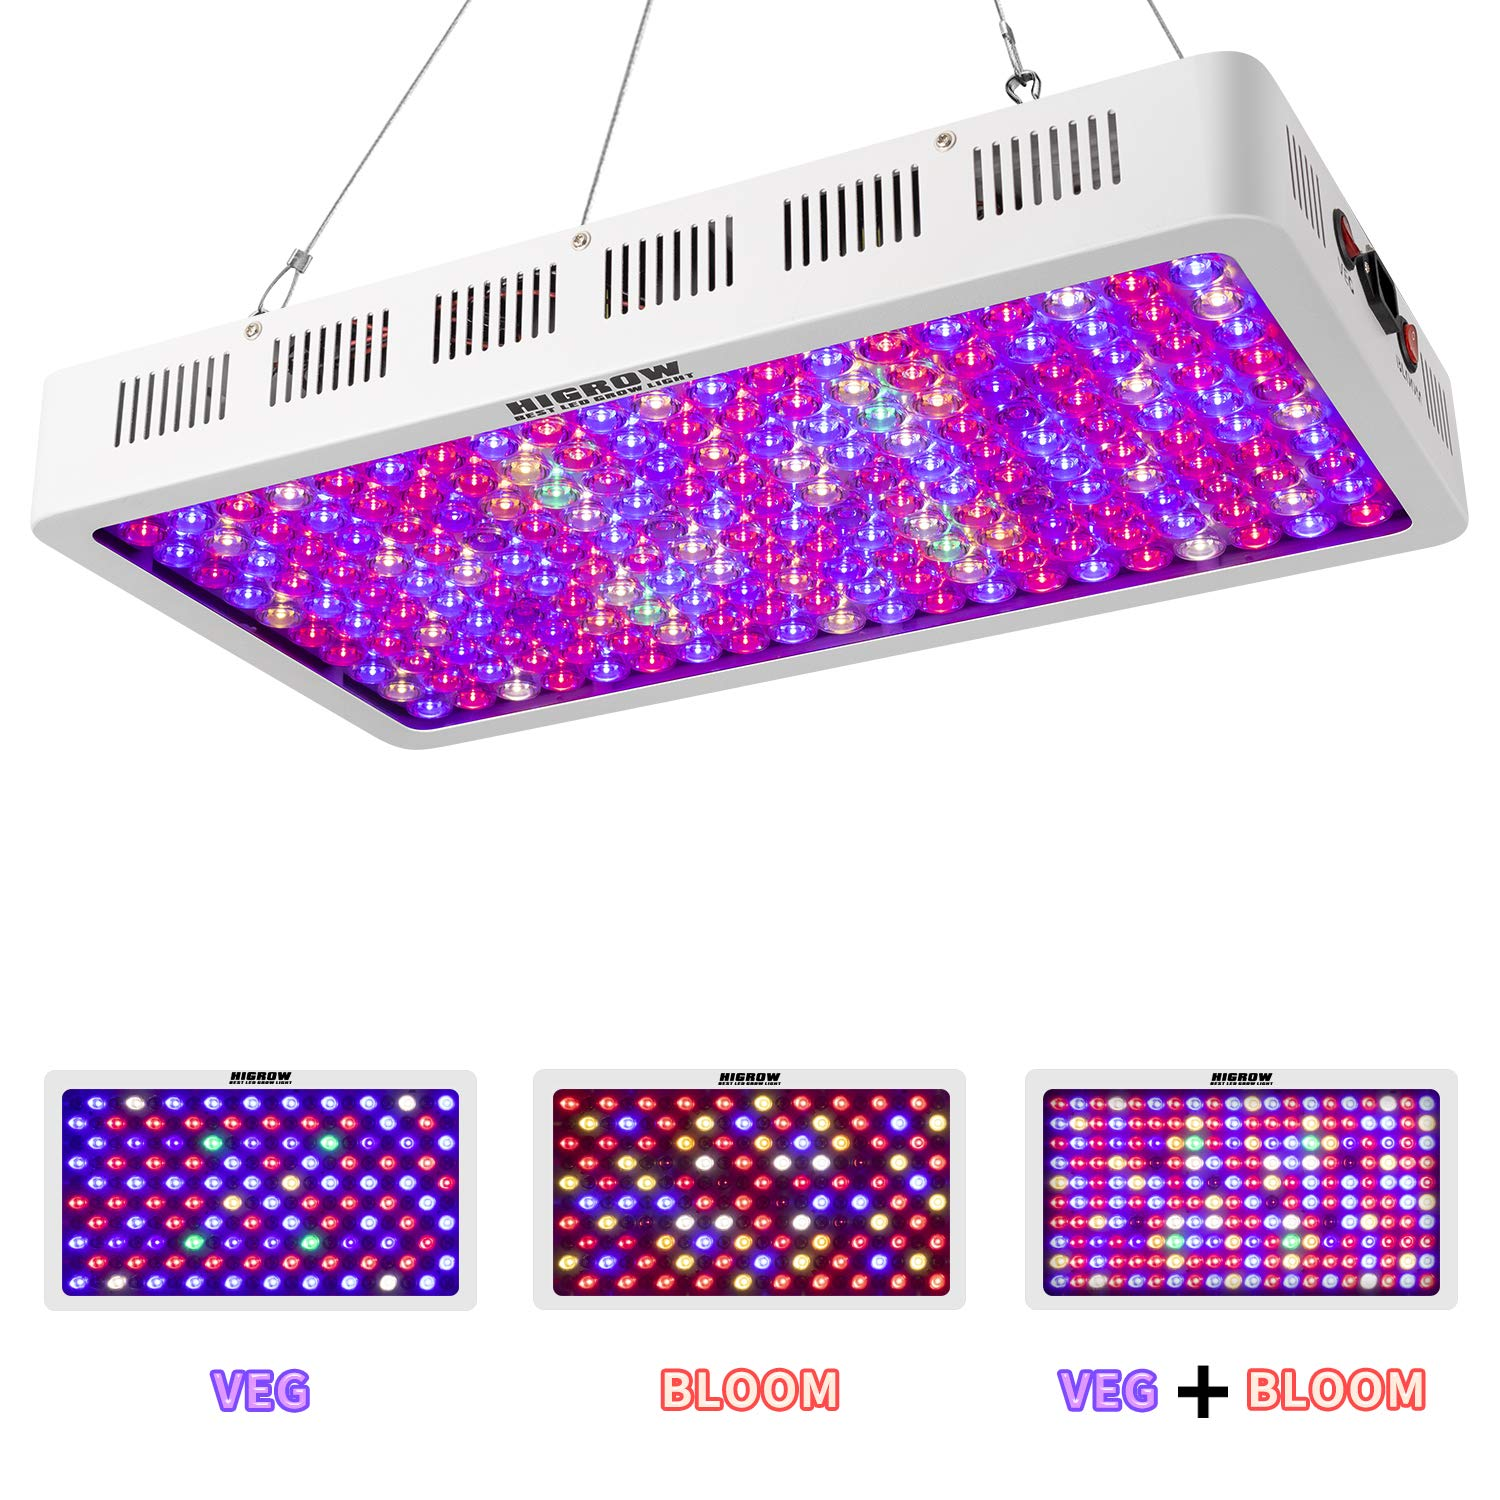 HIGROW Optical Lens-Series 1000W Full Spectrum LED Grow Light for Indoor Plants Veg and Flower, Garden Greenhouse Hydroponic Plant Growing Lights 12-Band, 5W LED